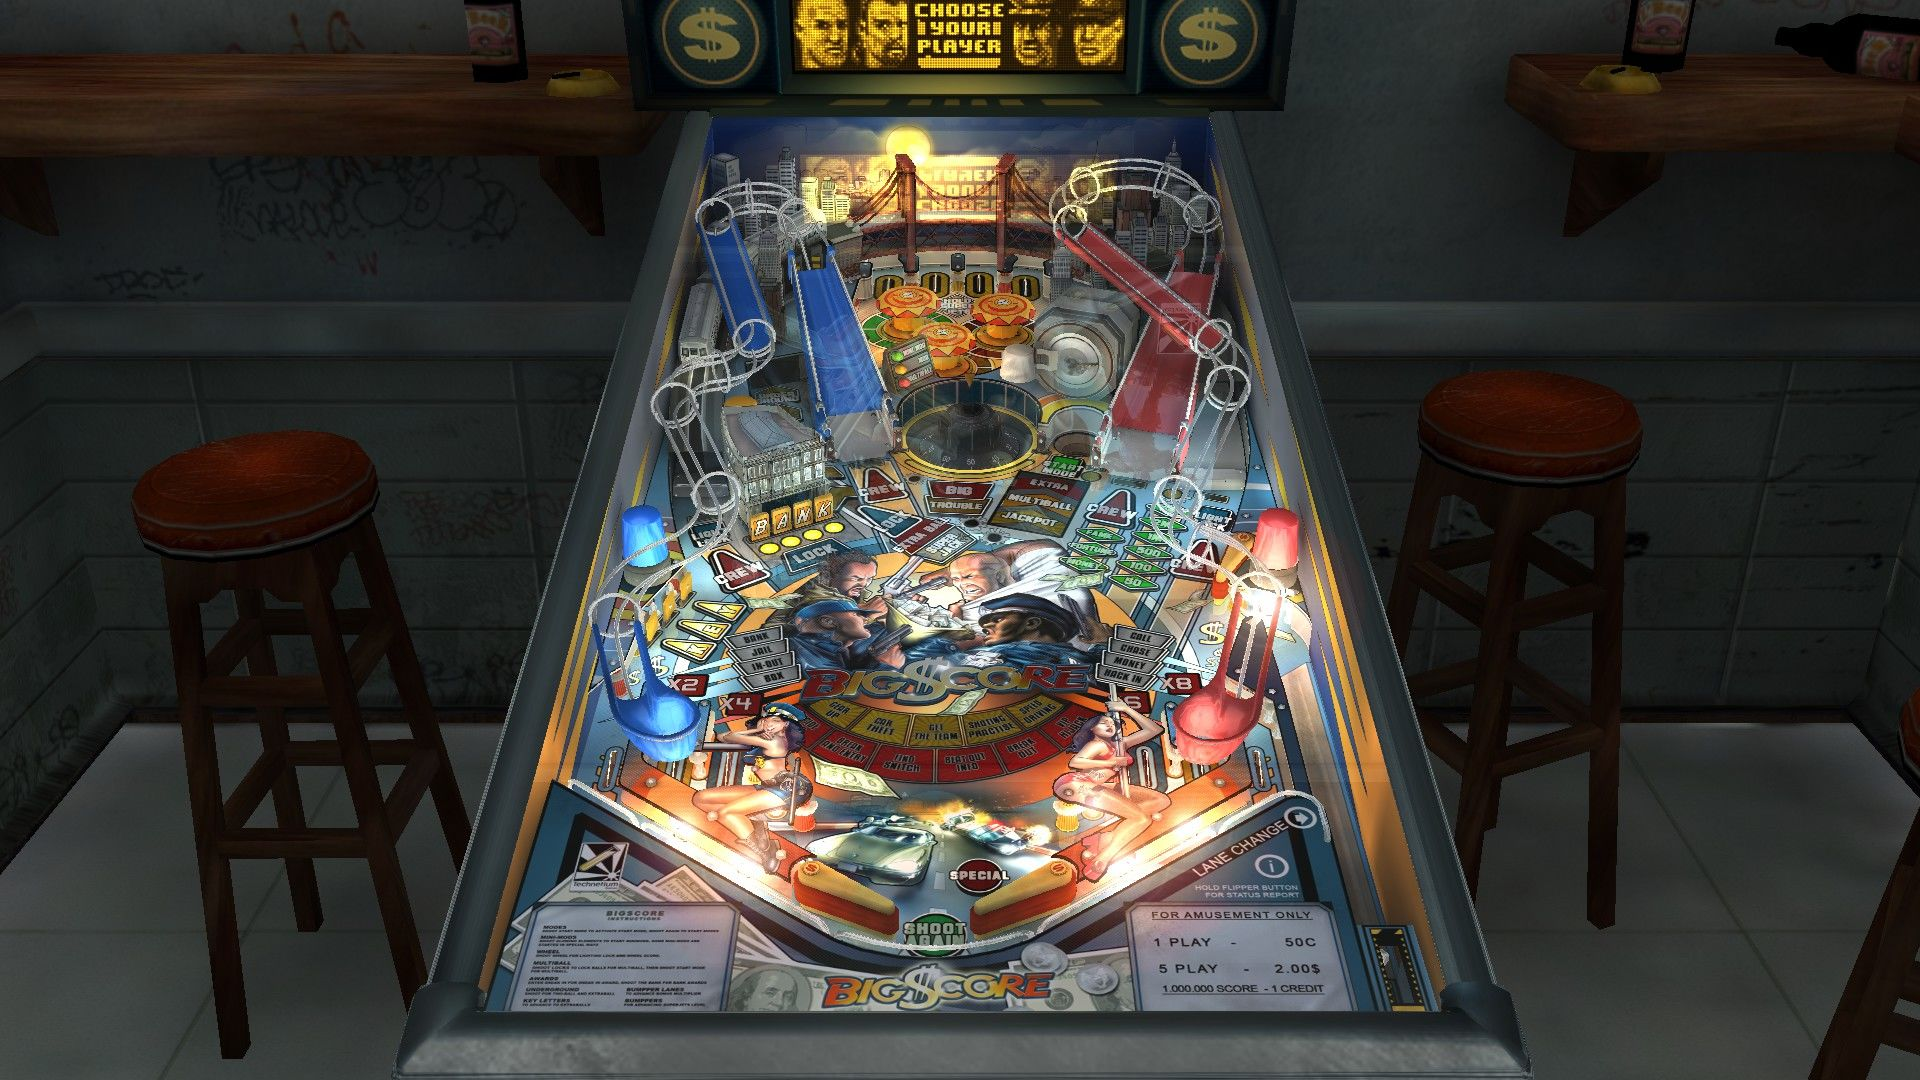 SlamIt Pinball: Big Score Windows The game starts by choosing a character: you'll either be a thief or a cop.